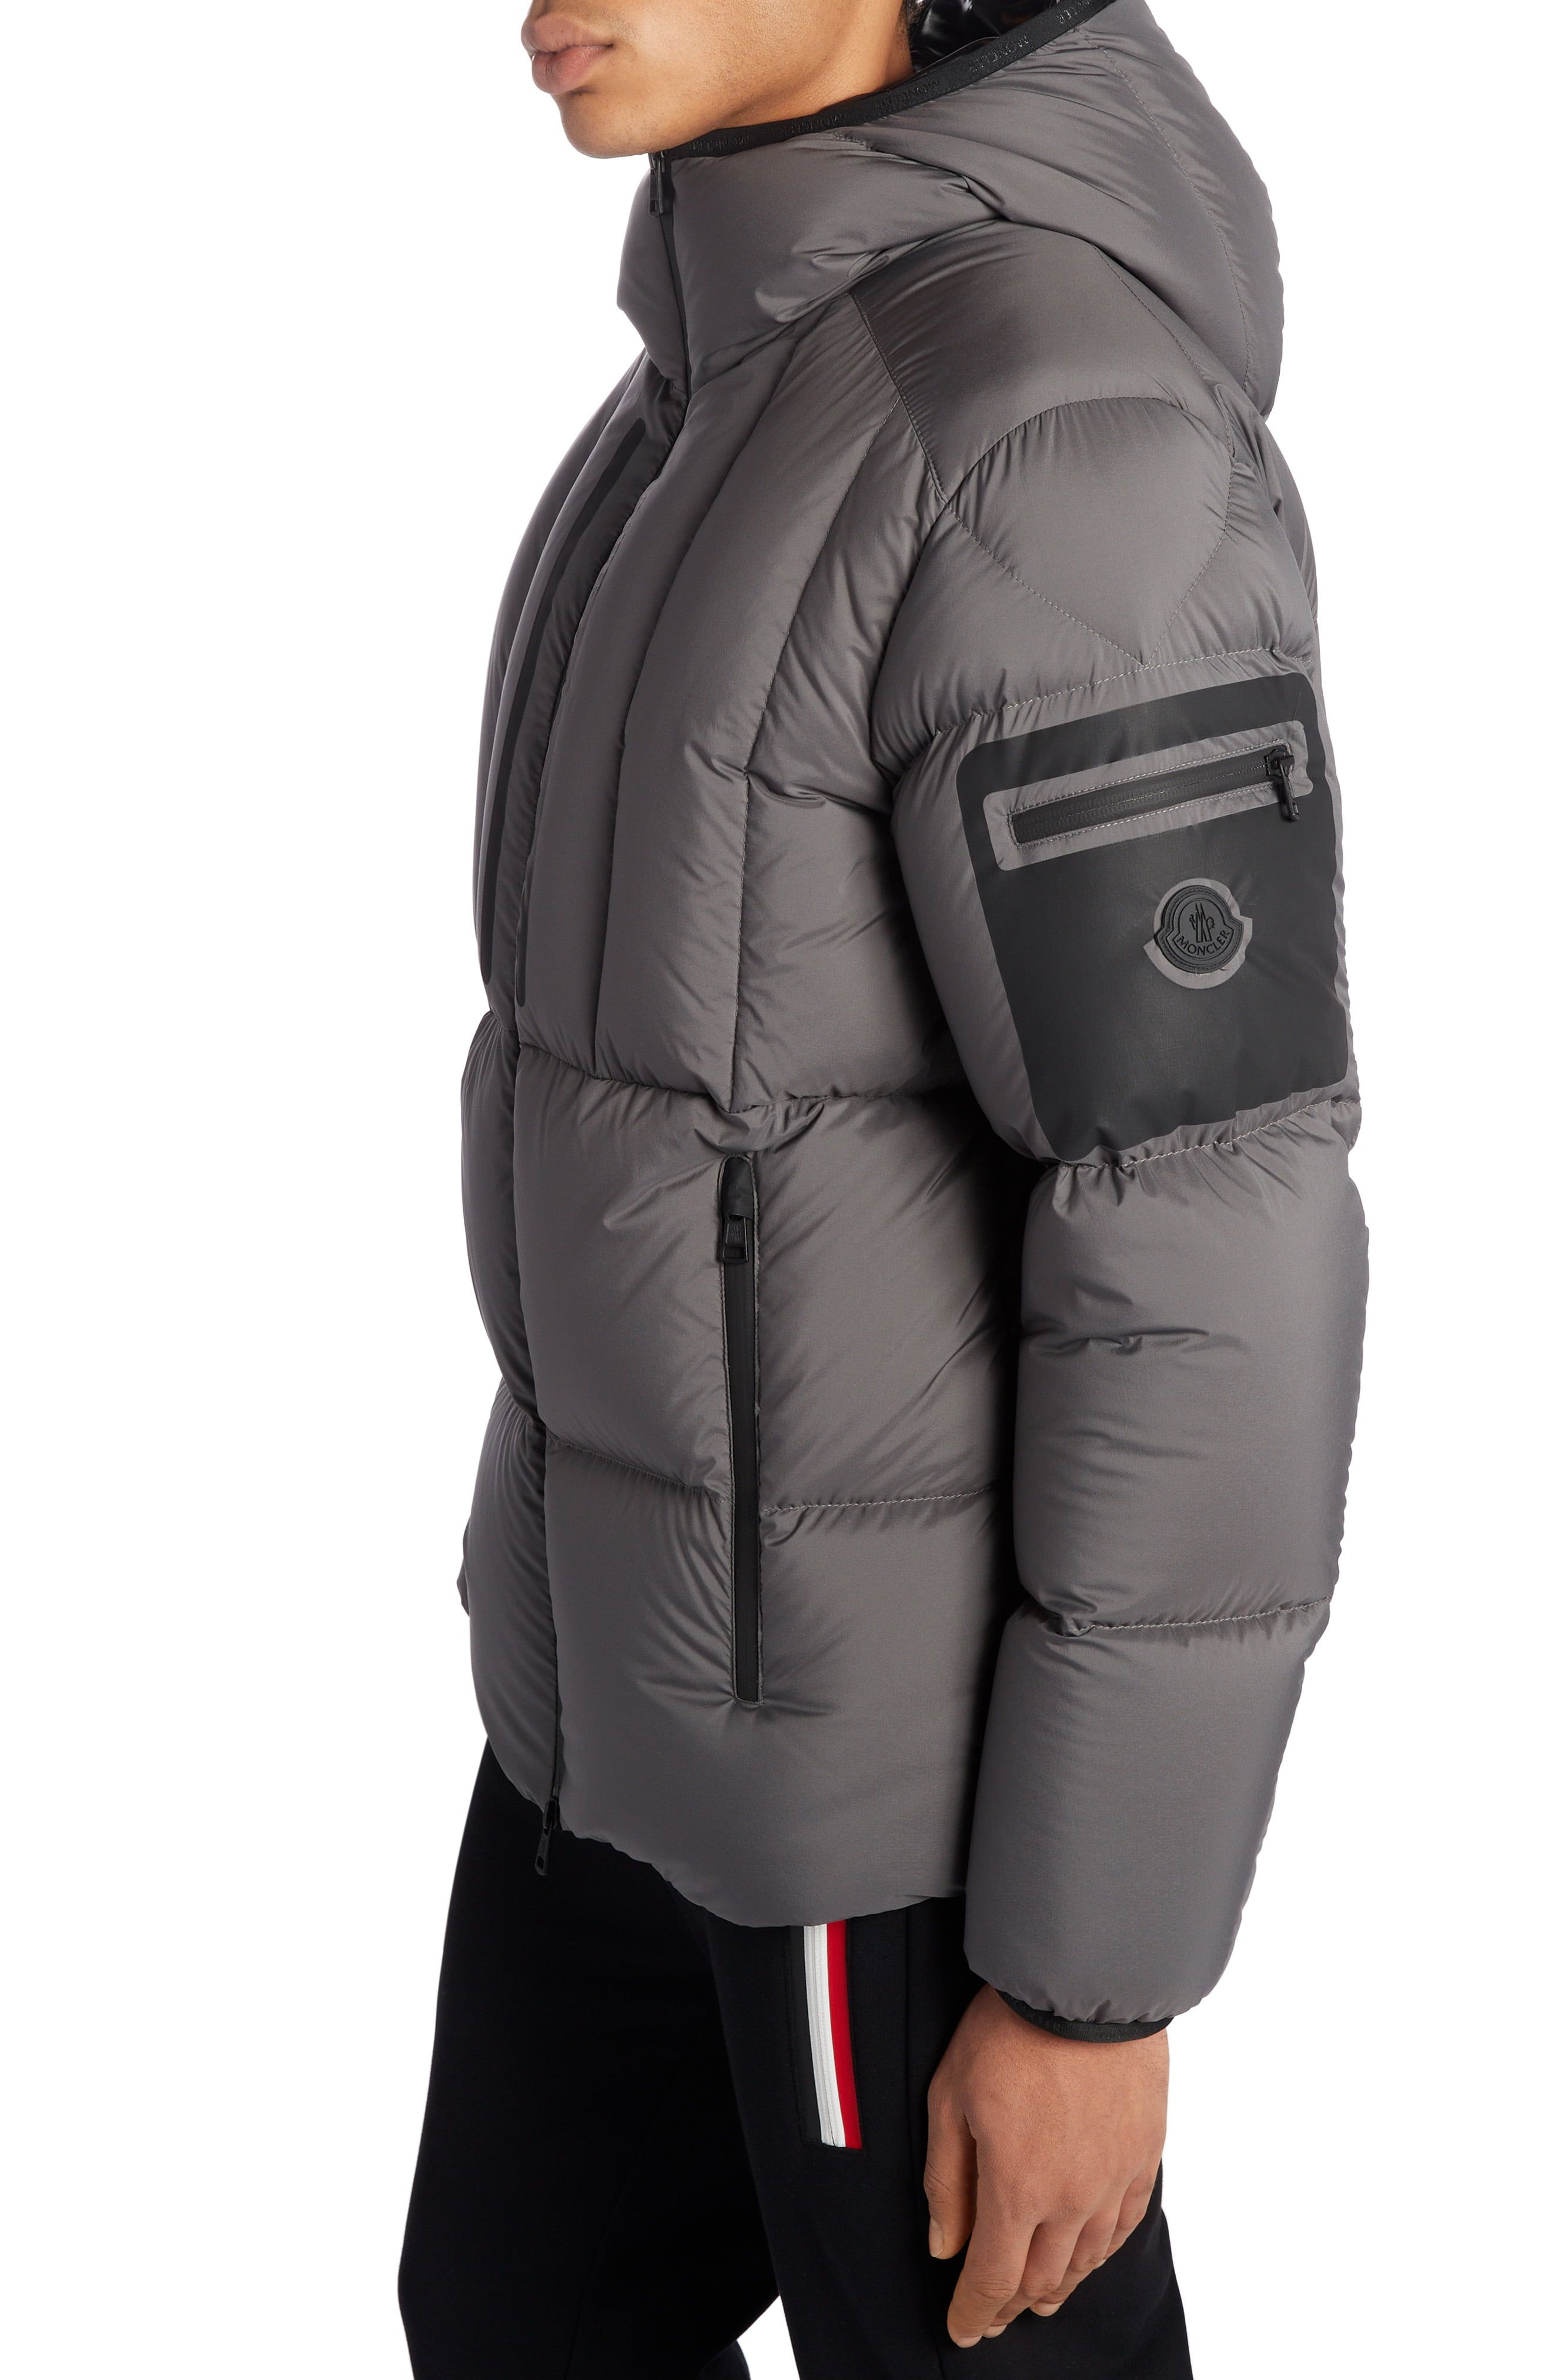 Moncler Arcachon Hooded Down Jacket Nordstrom In 2021 Mens Clothing Styles Down Jacket Jackets [ 4048 x 2640 Pixel ]